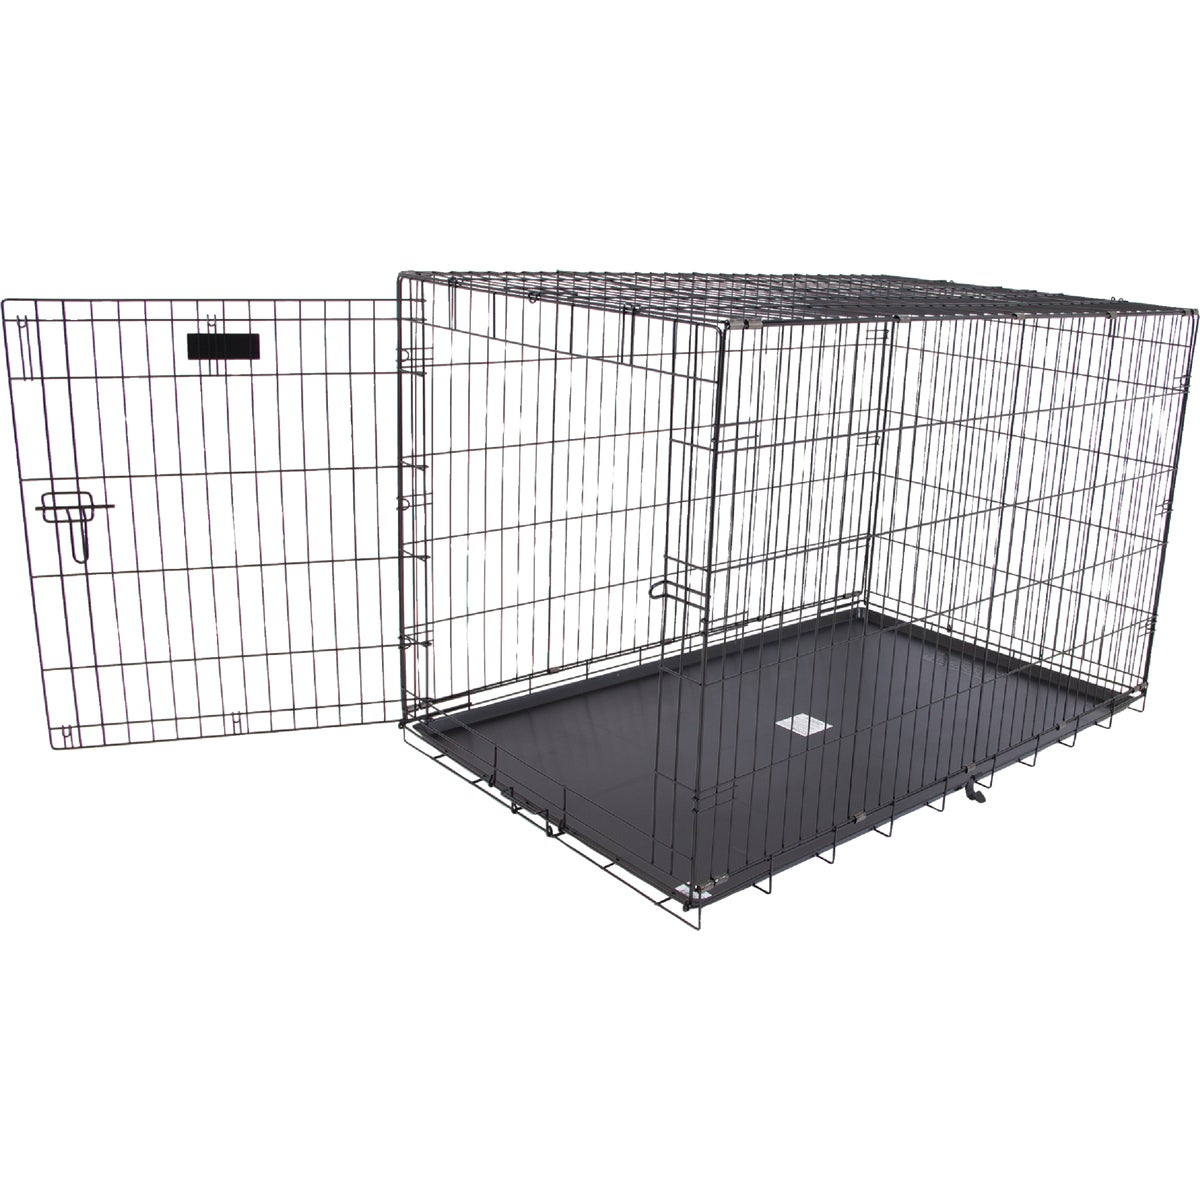 43.4X29.3X31 DOG CRATE - 21946 by Petmate Doskocil